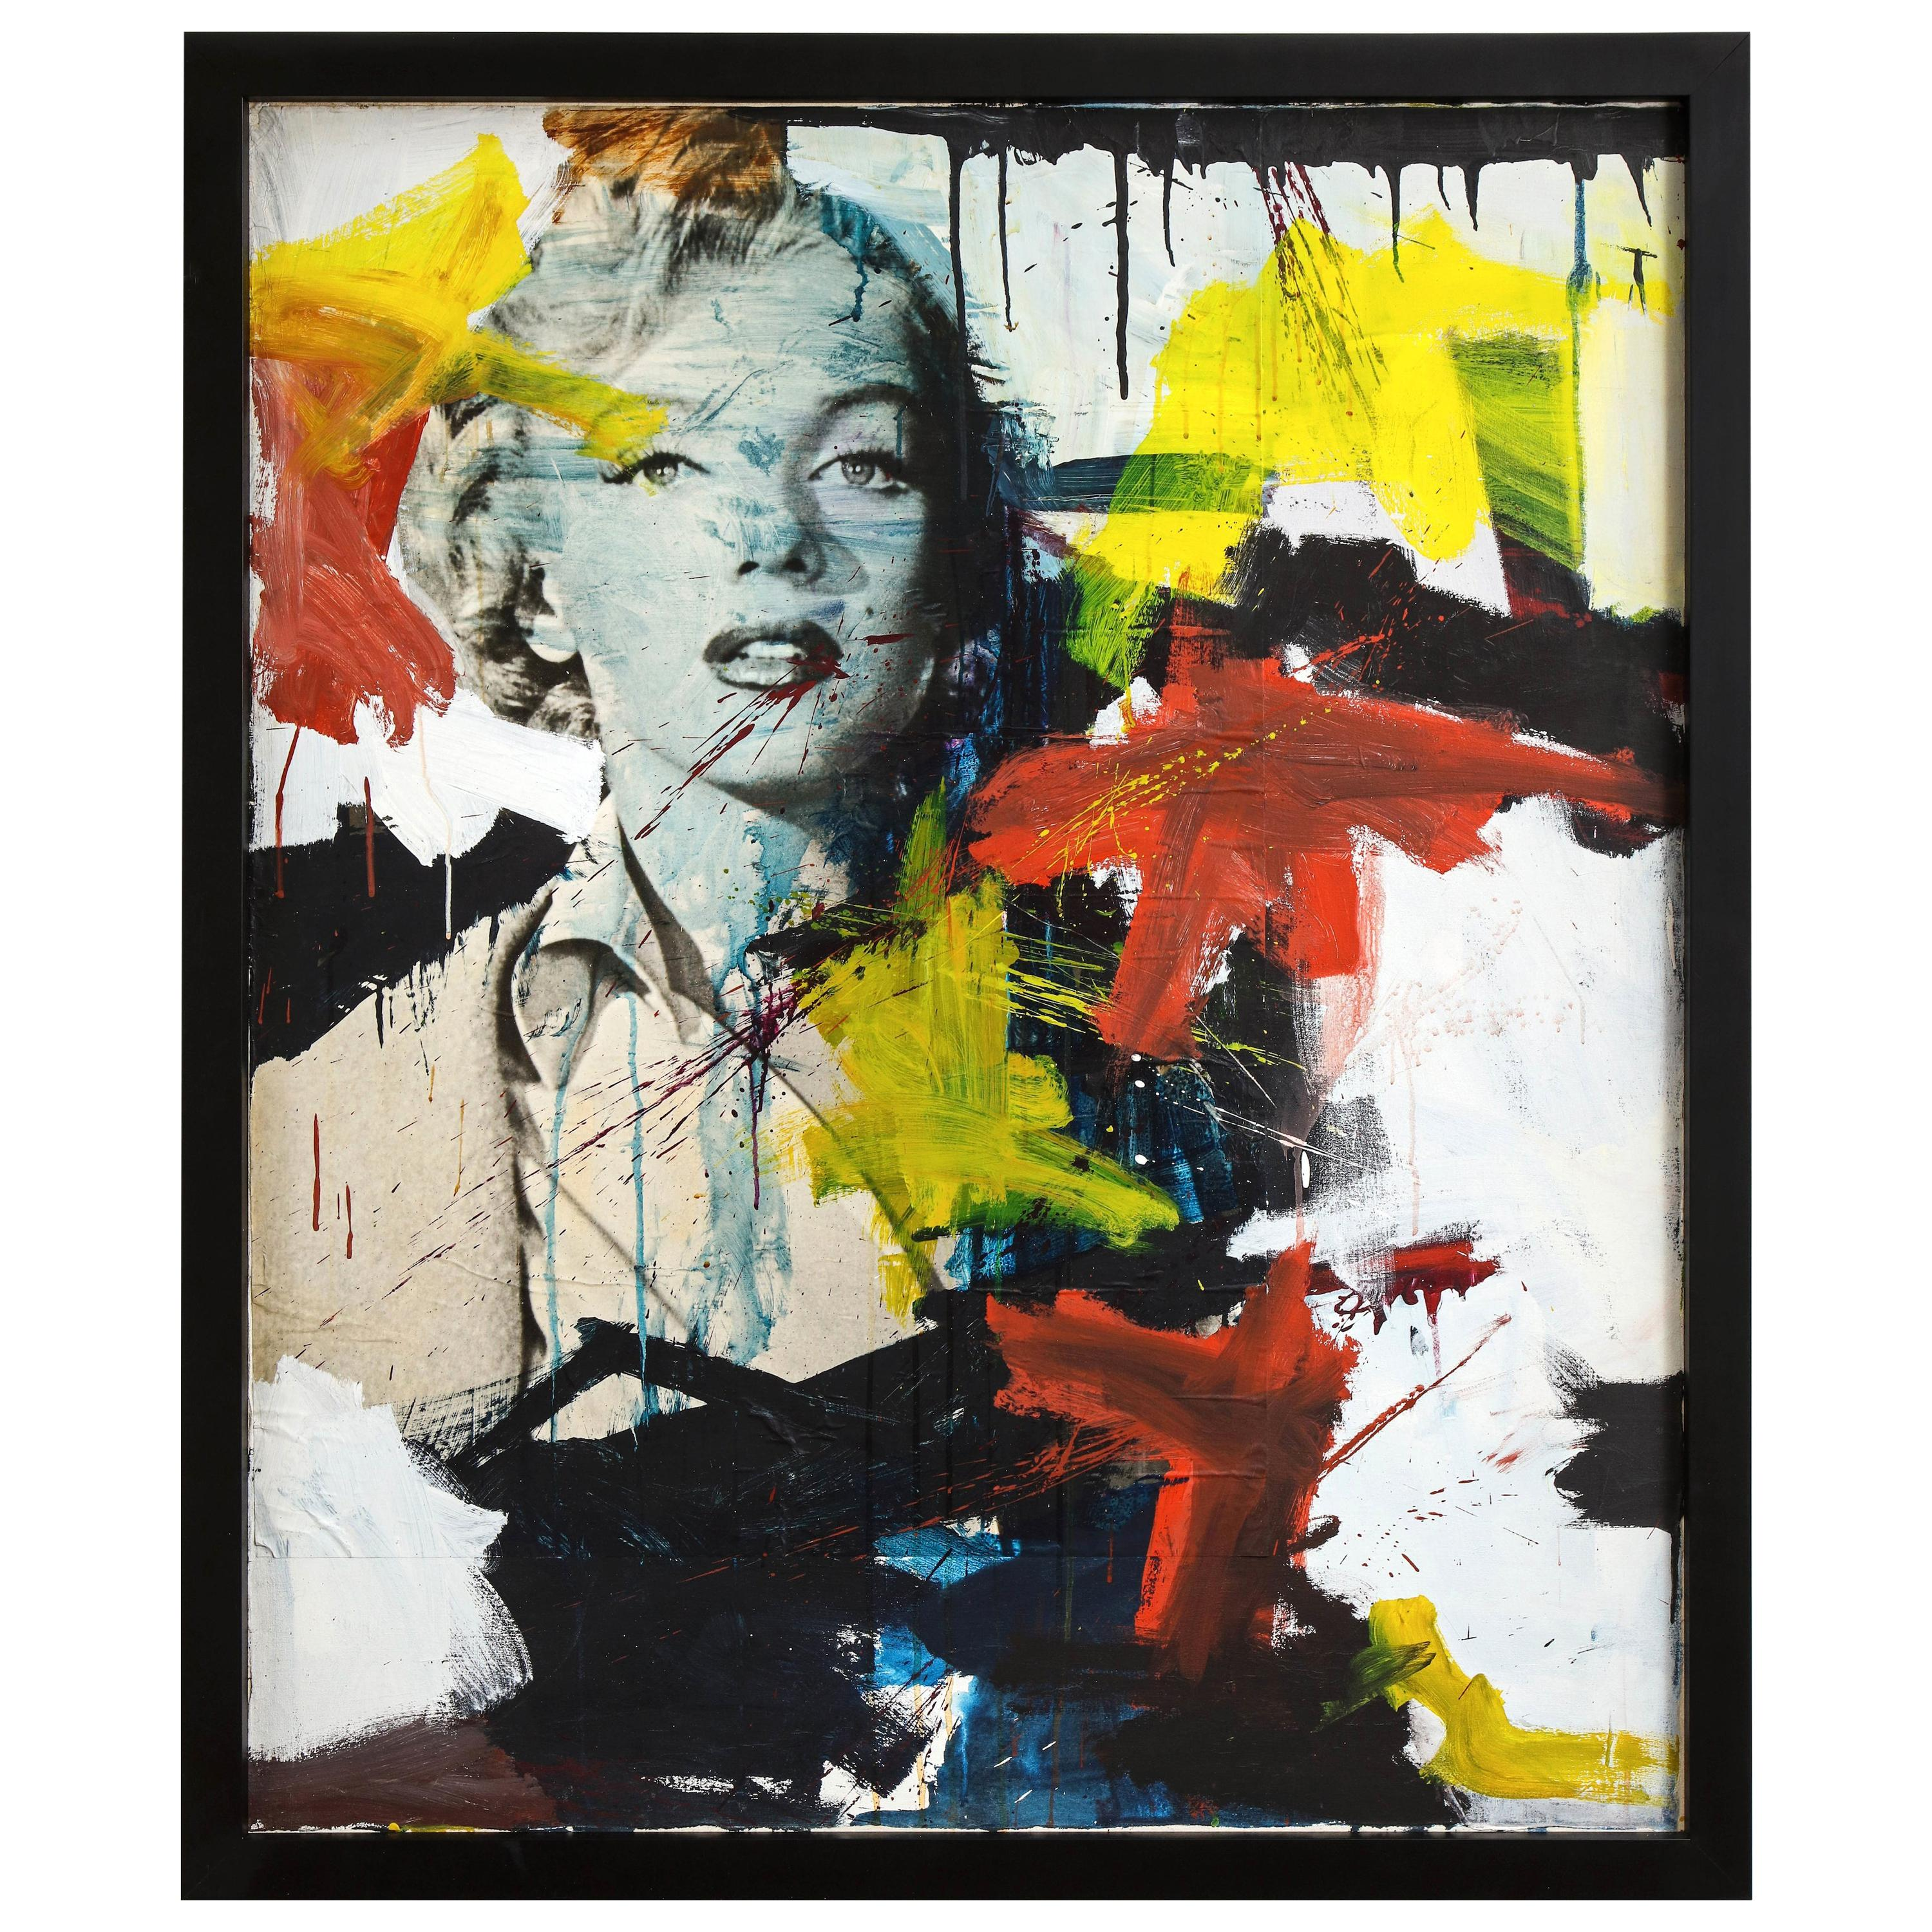 Marilyn Monroe Abstract Collage and Painting, circa 1966